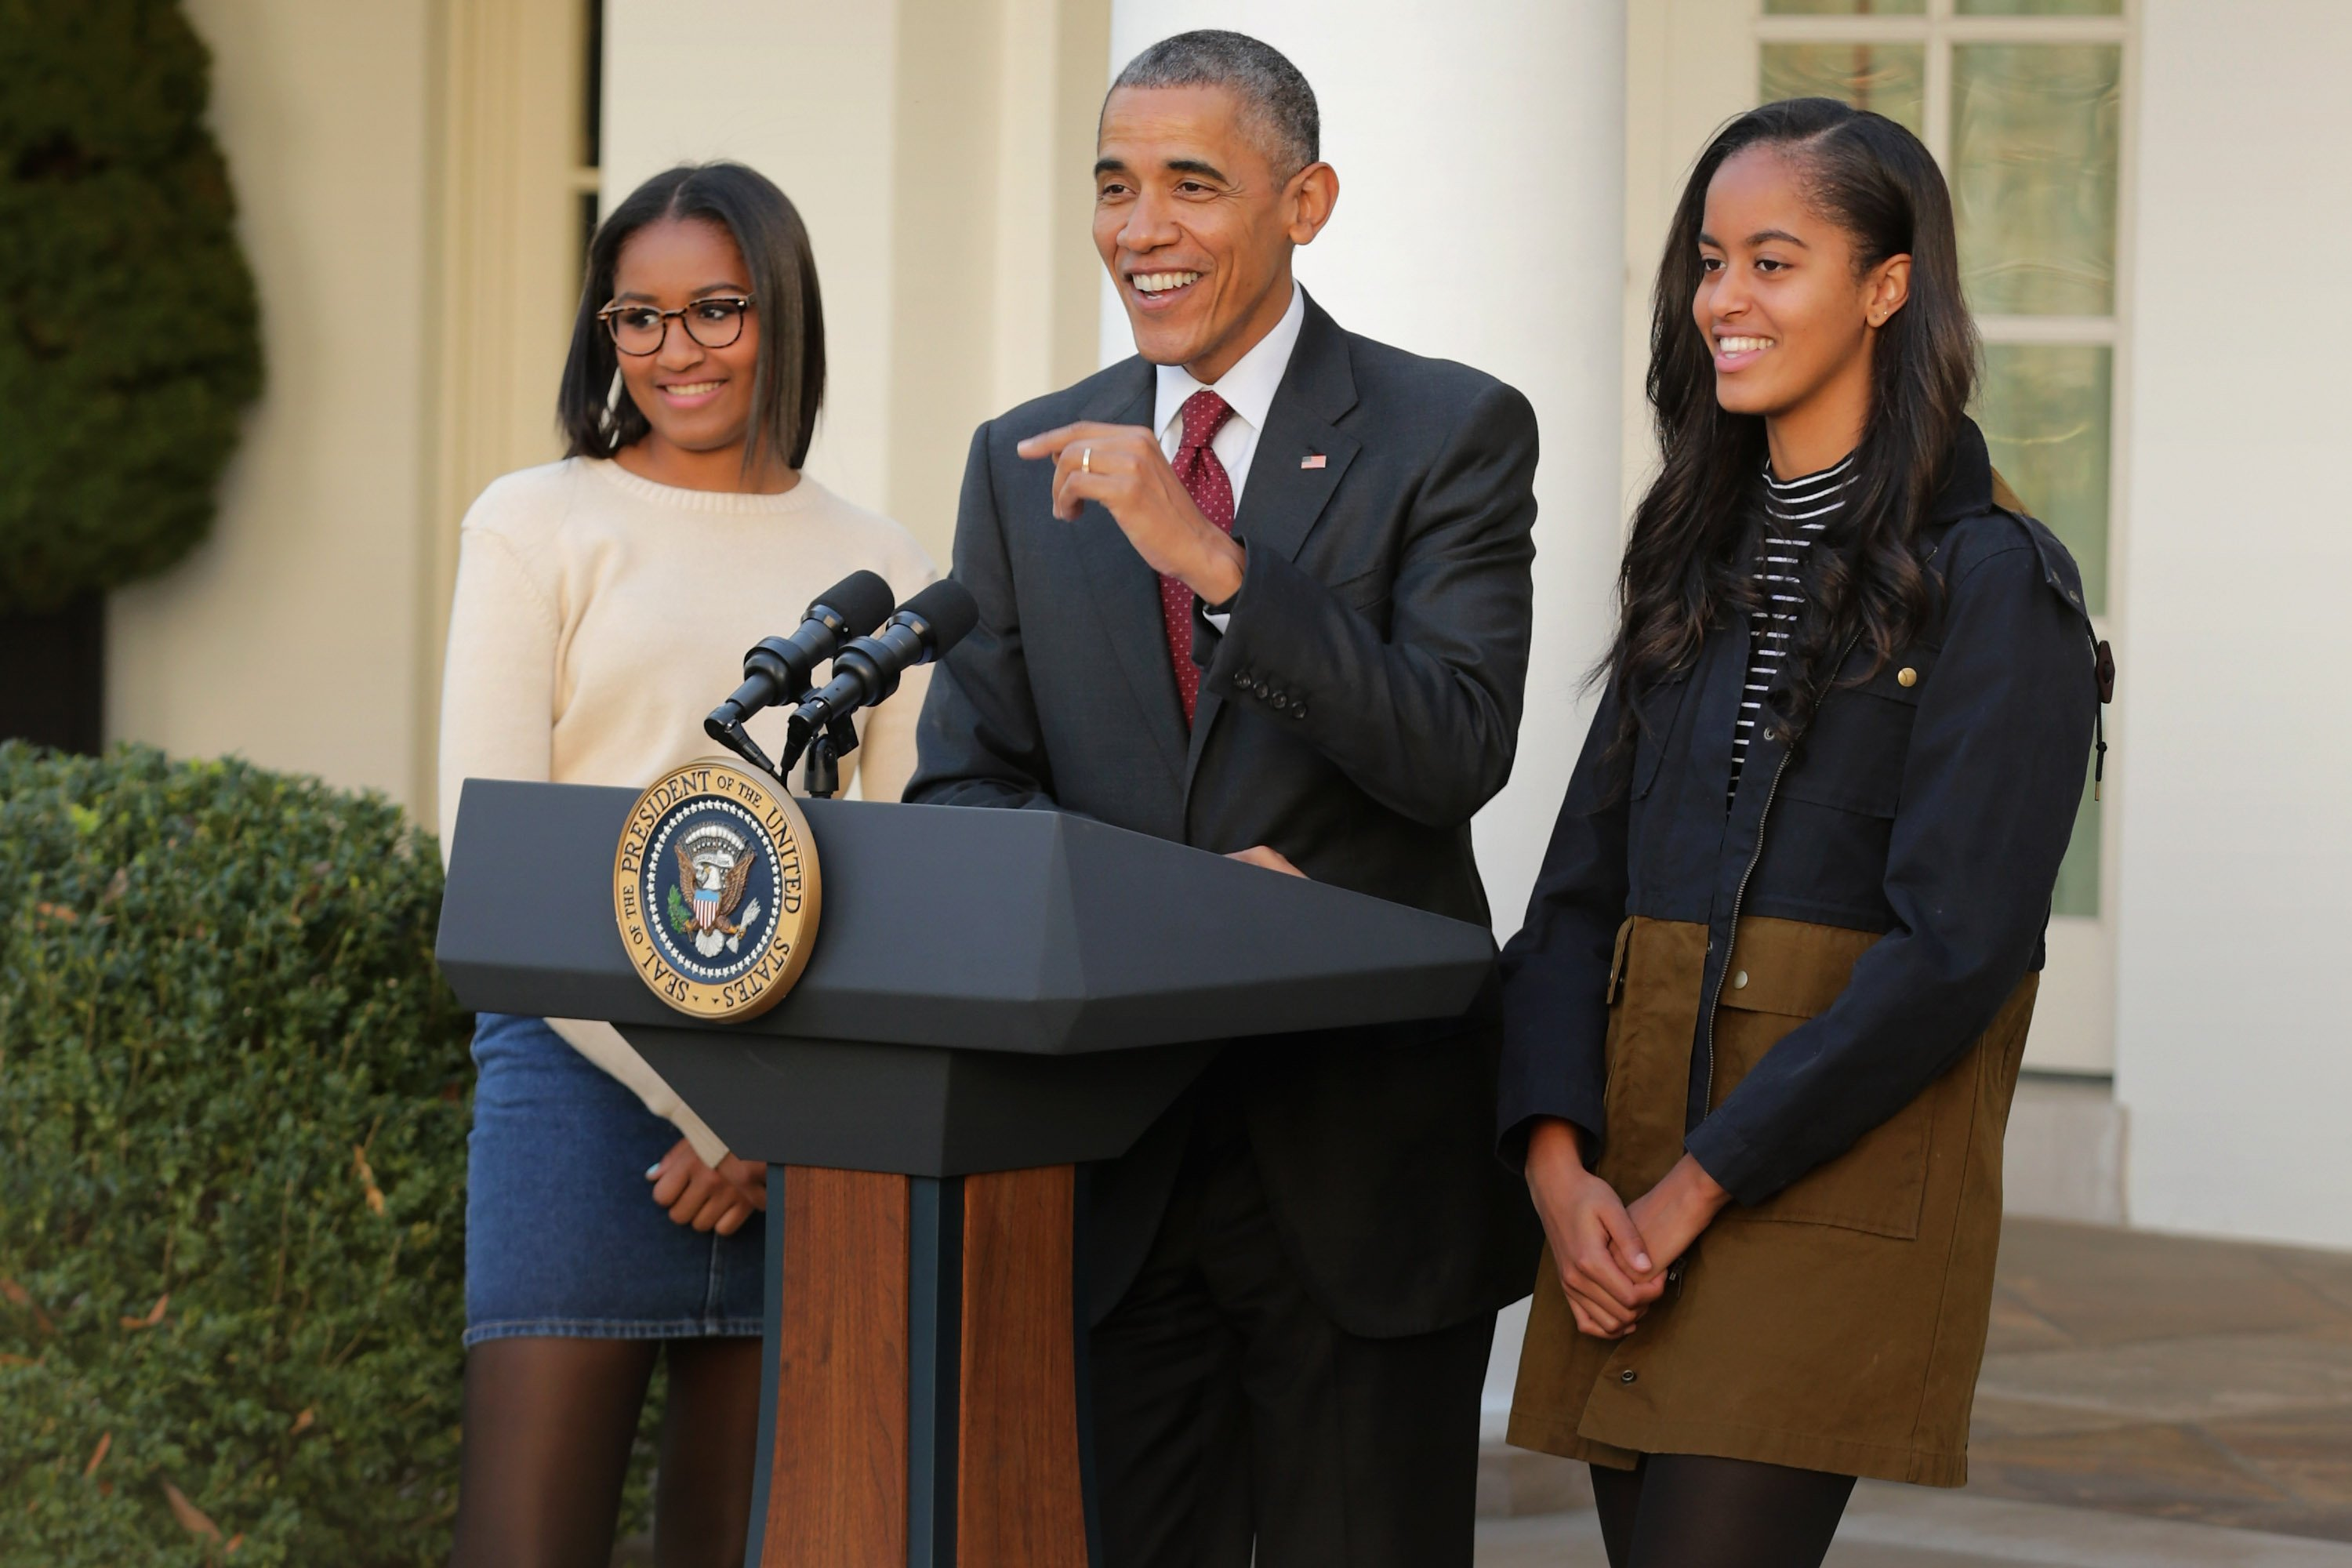 President Obama with Sasha and Malia at the 2015 turkey pardon ceremony in the White House Rose Garden l Source: Getty Images